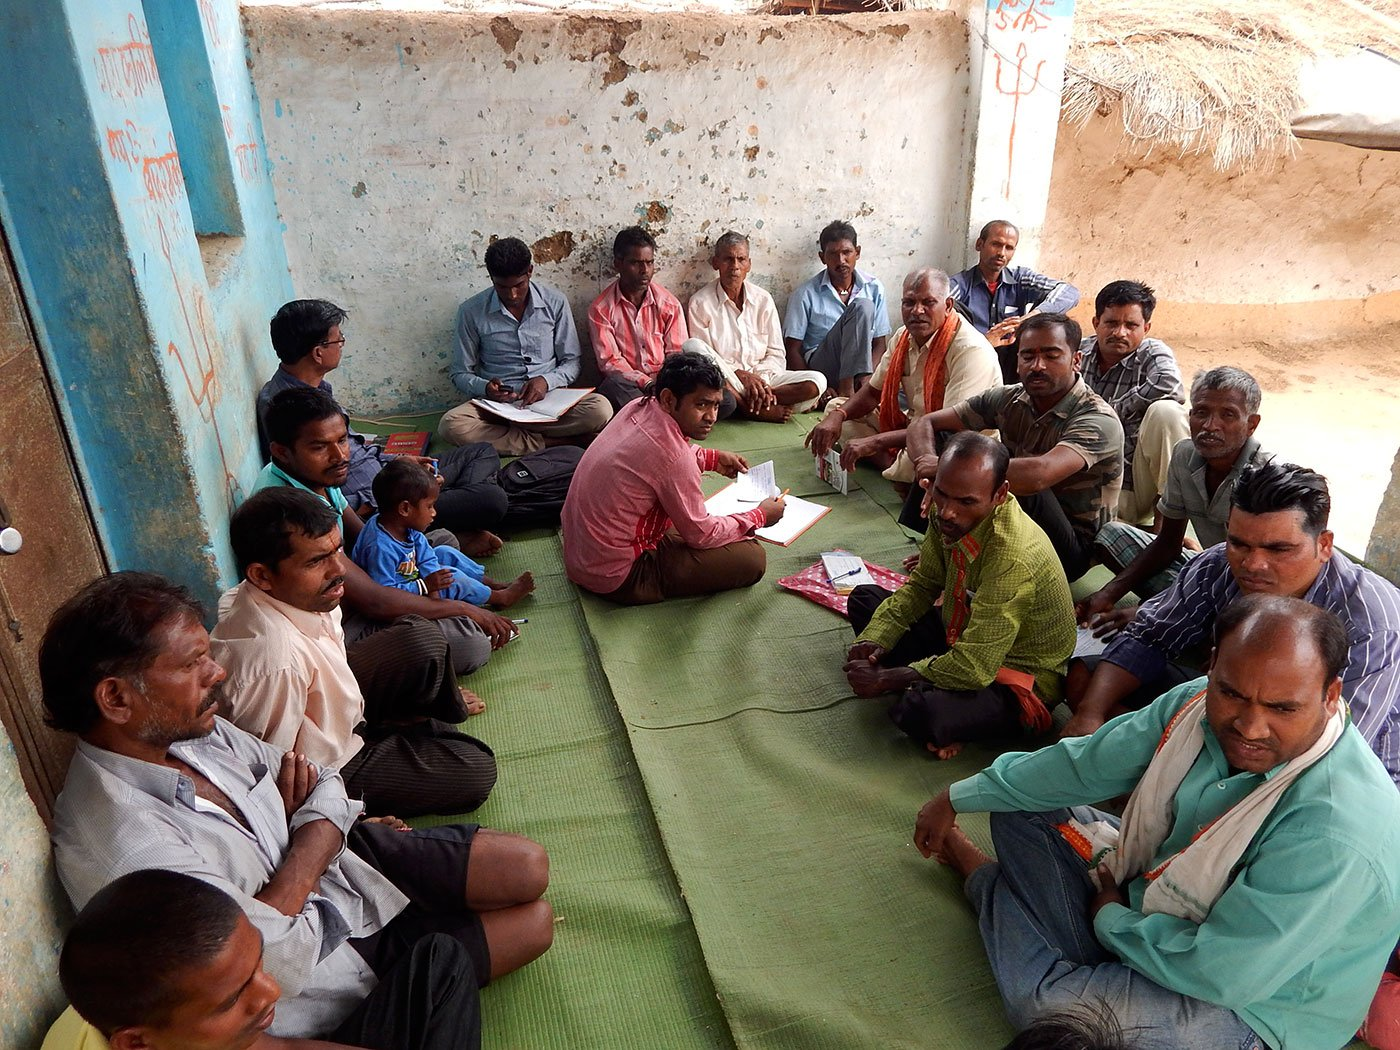 06-Raajnandgaon-SK-Chhattisgarh Farmers are on the Brink.jpg